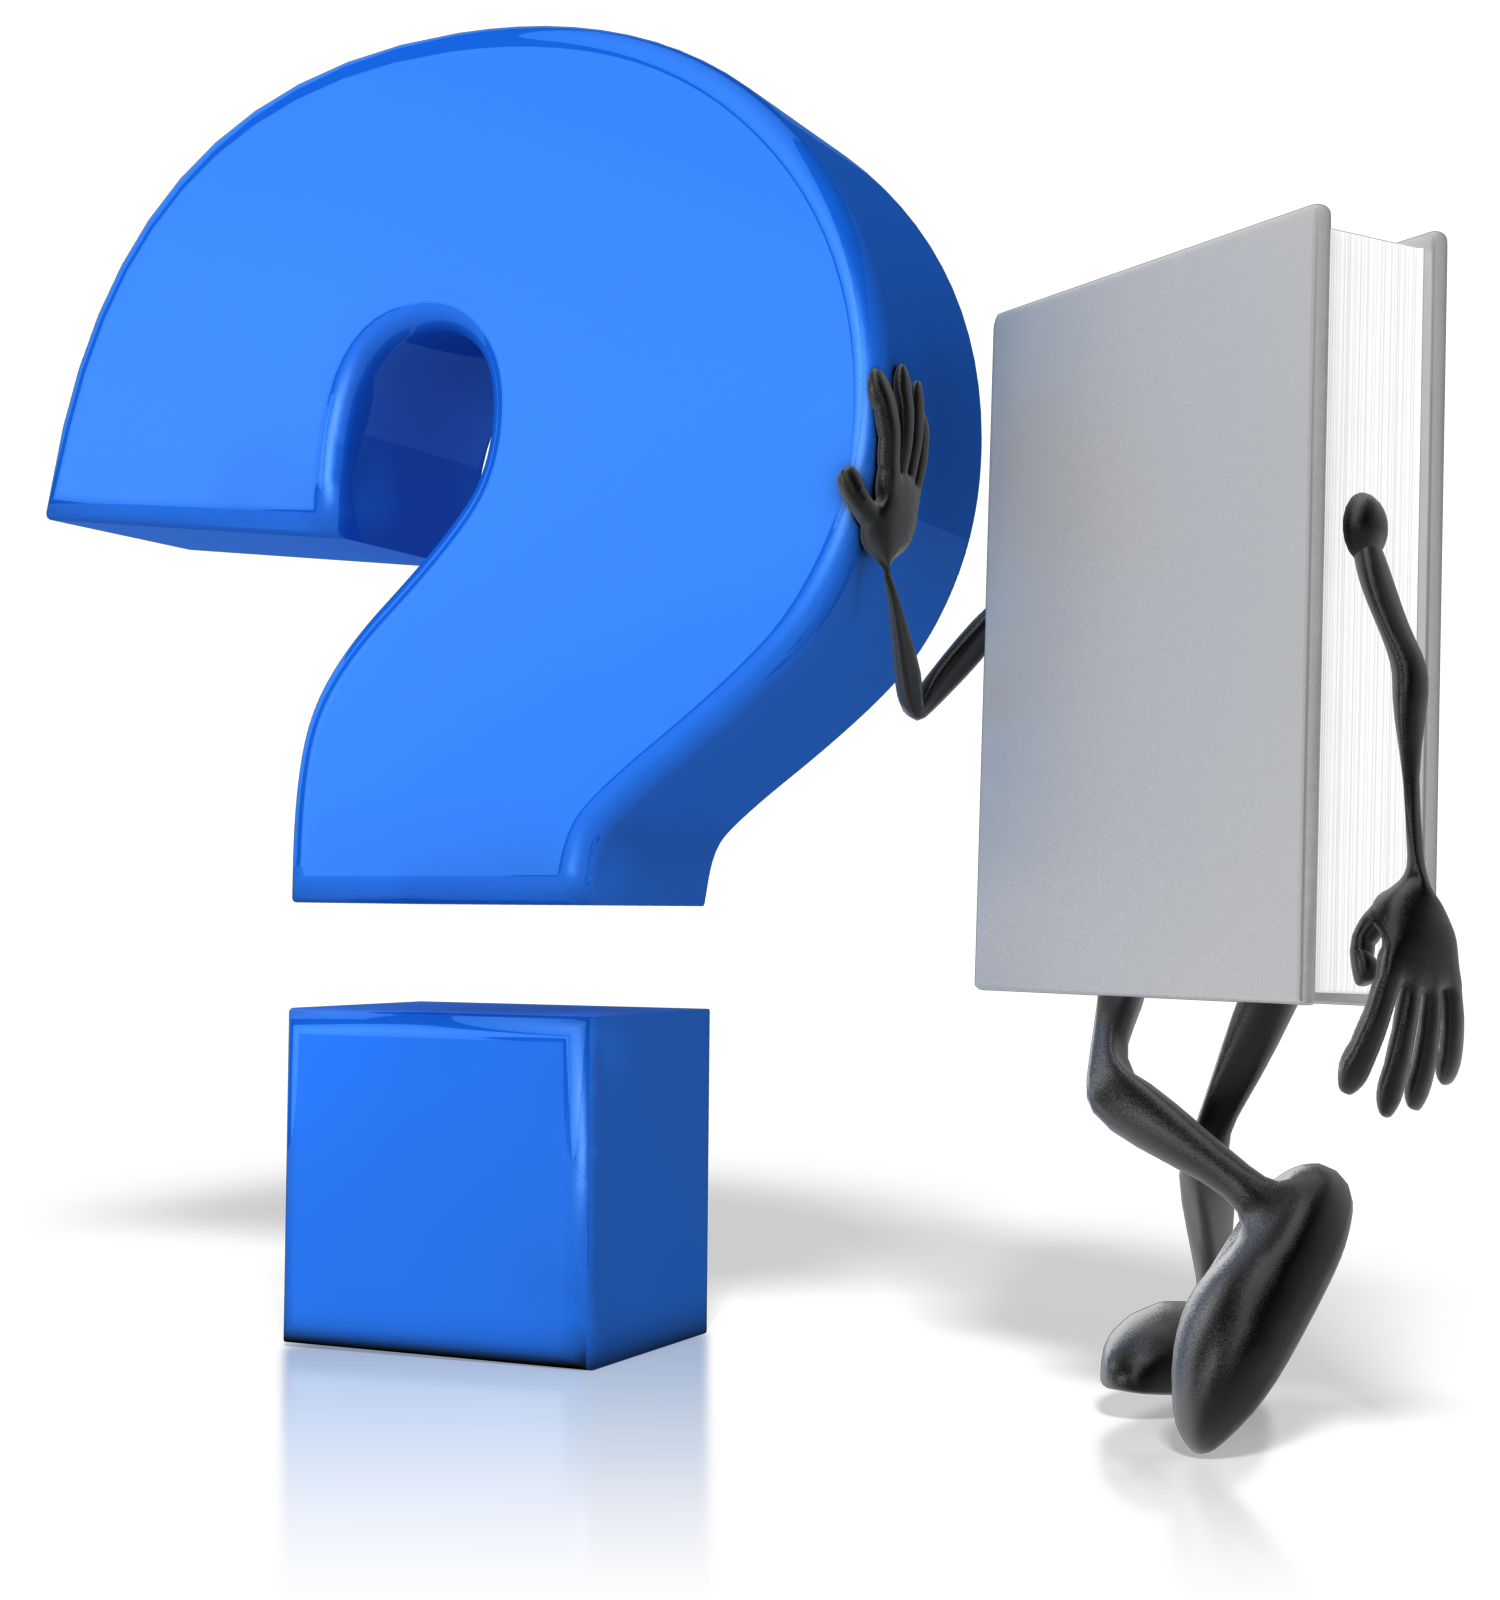 book_leaning_against_question_mark_1600_clr_12575.png